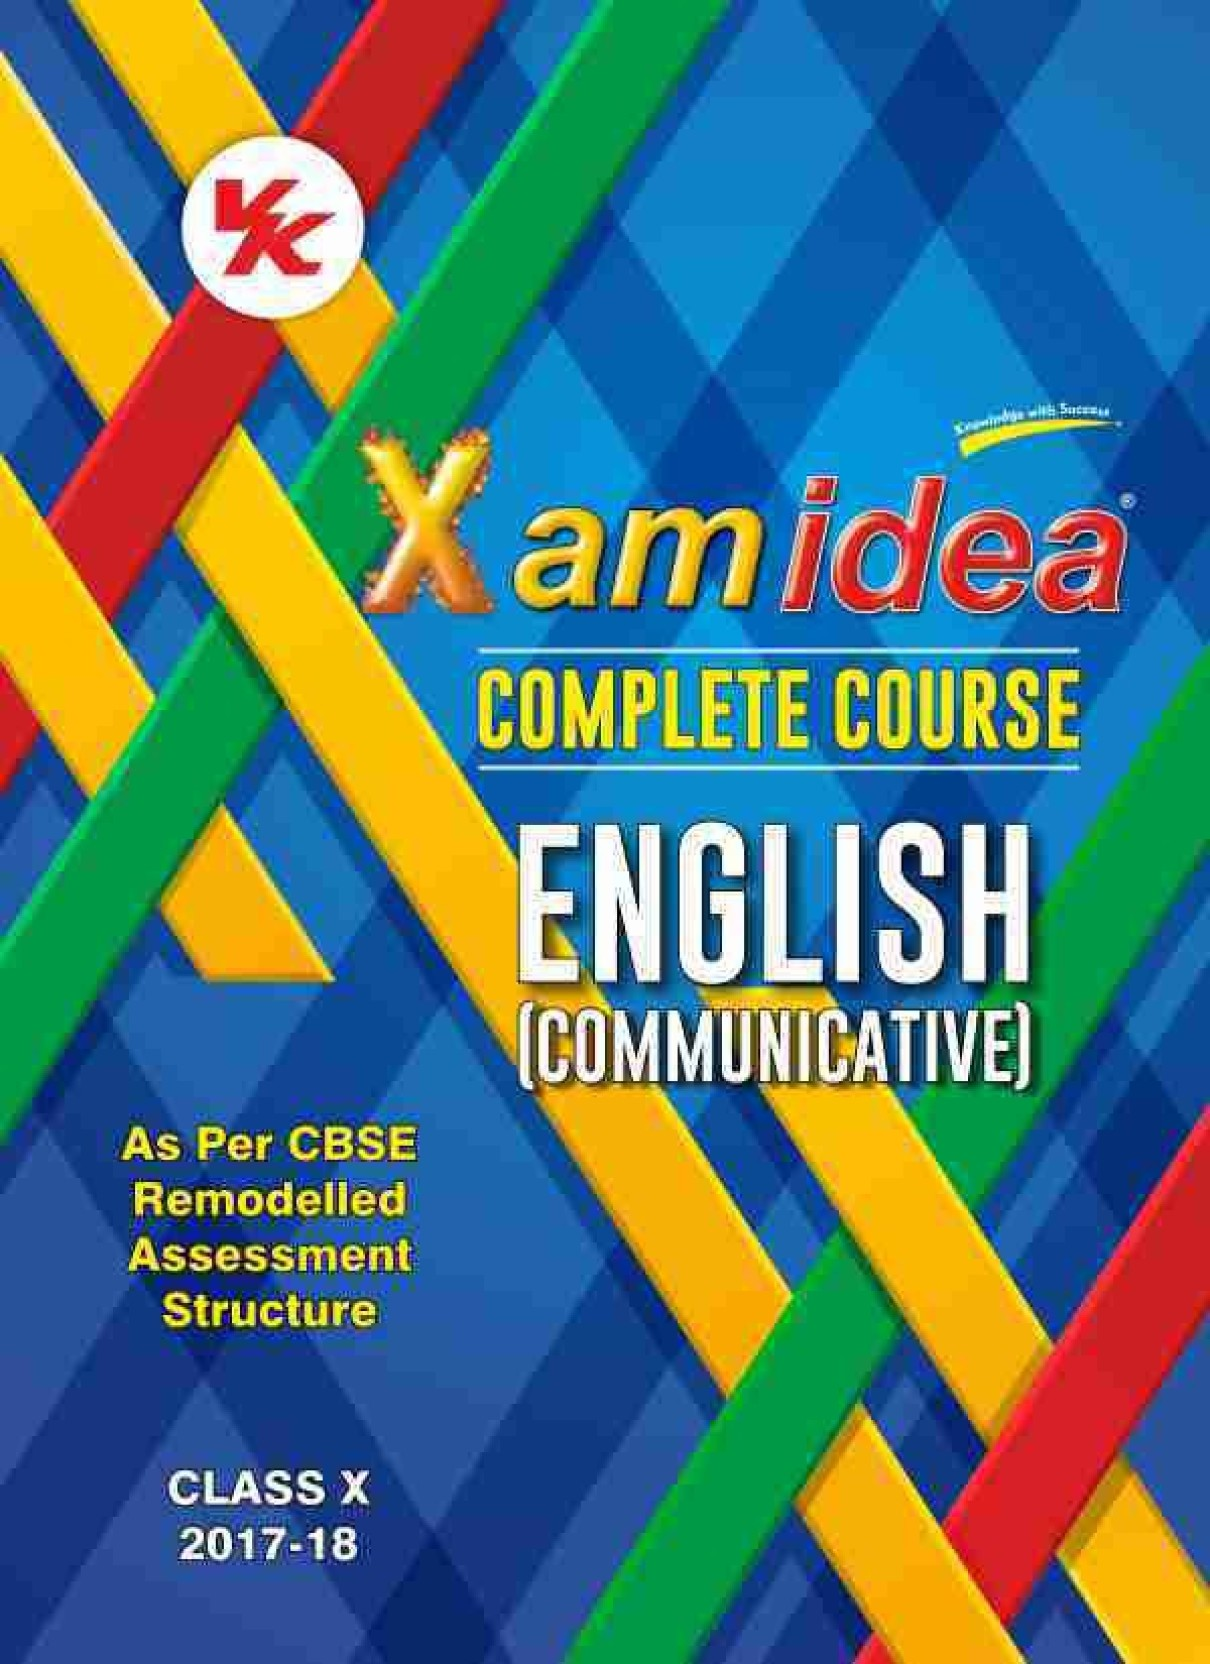 Xam idea Complete Course English (Communicative) Class 10. ADD TO CART